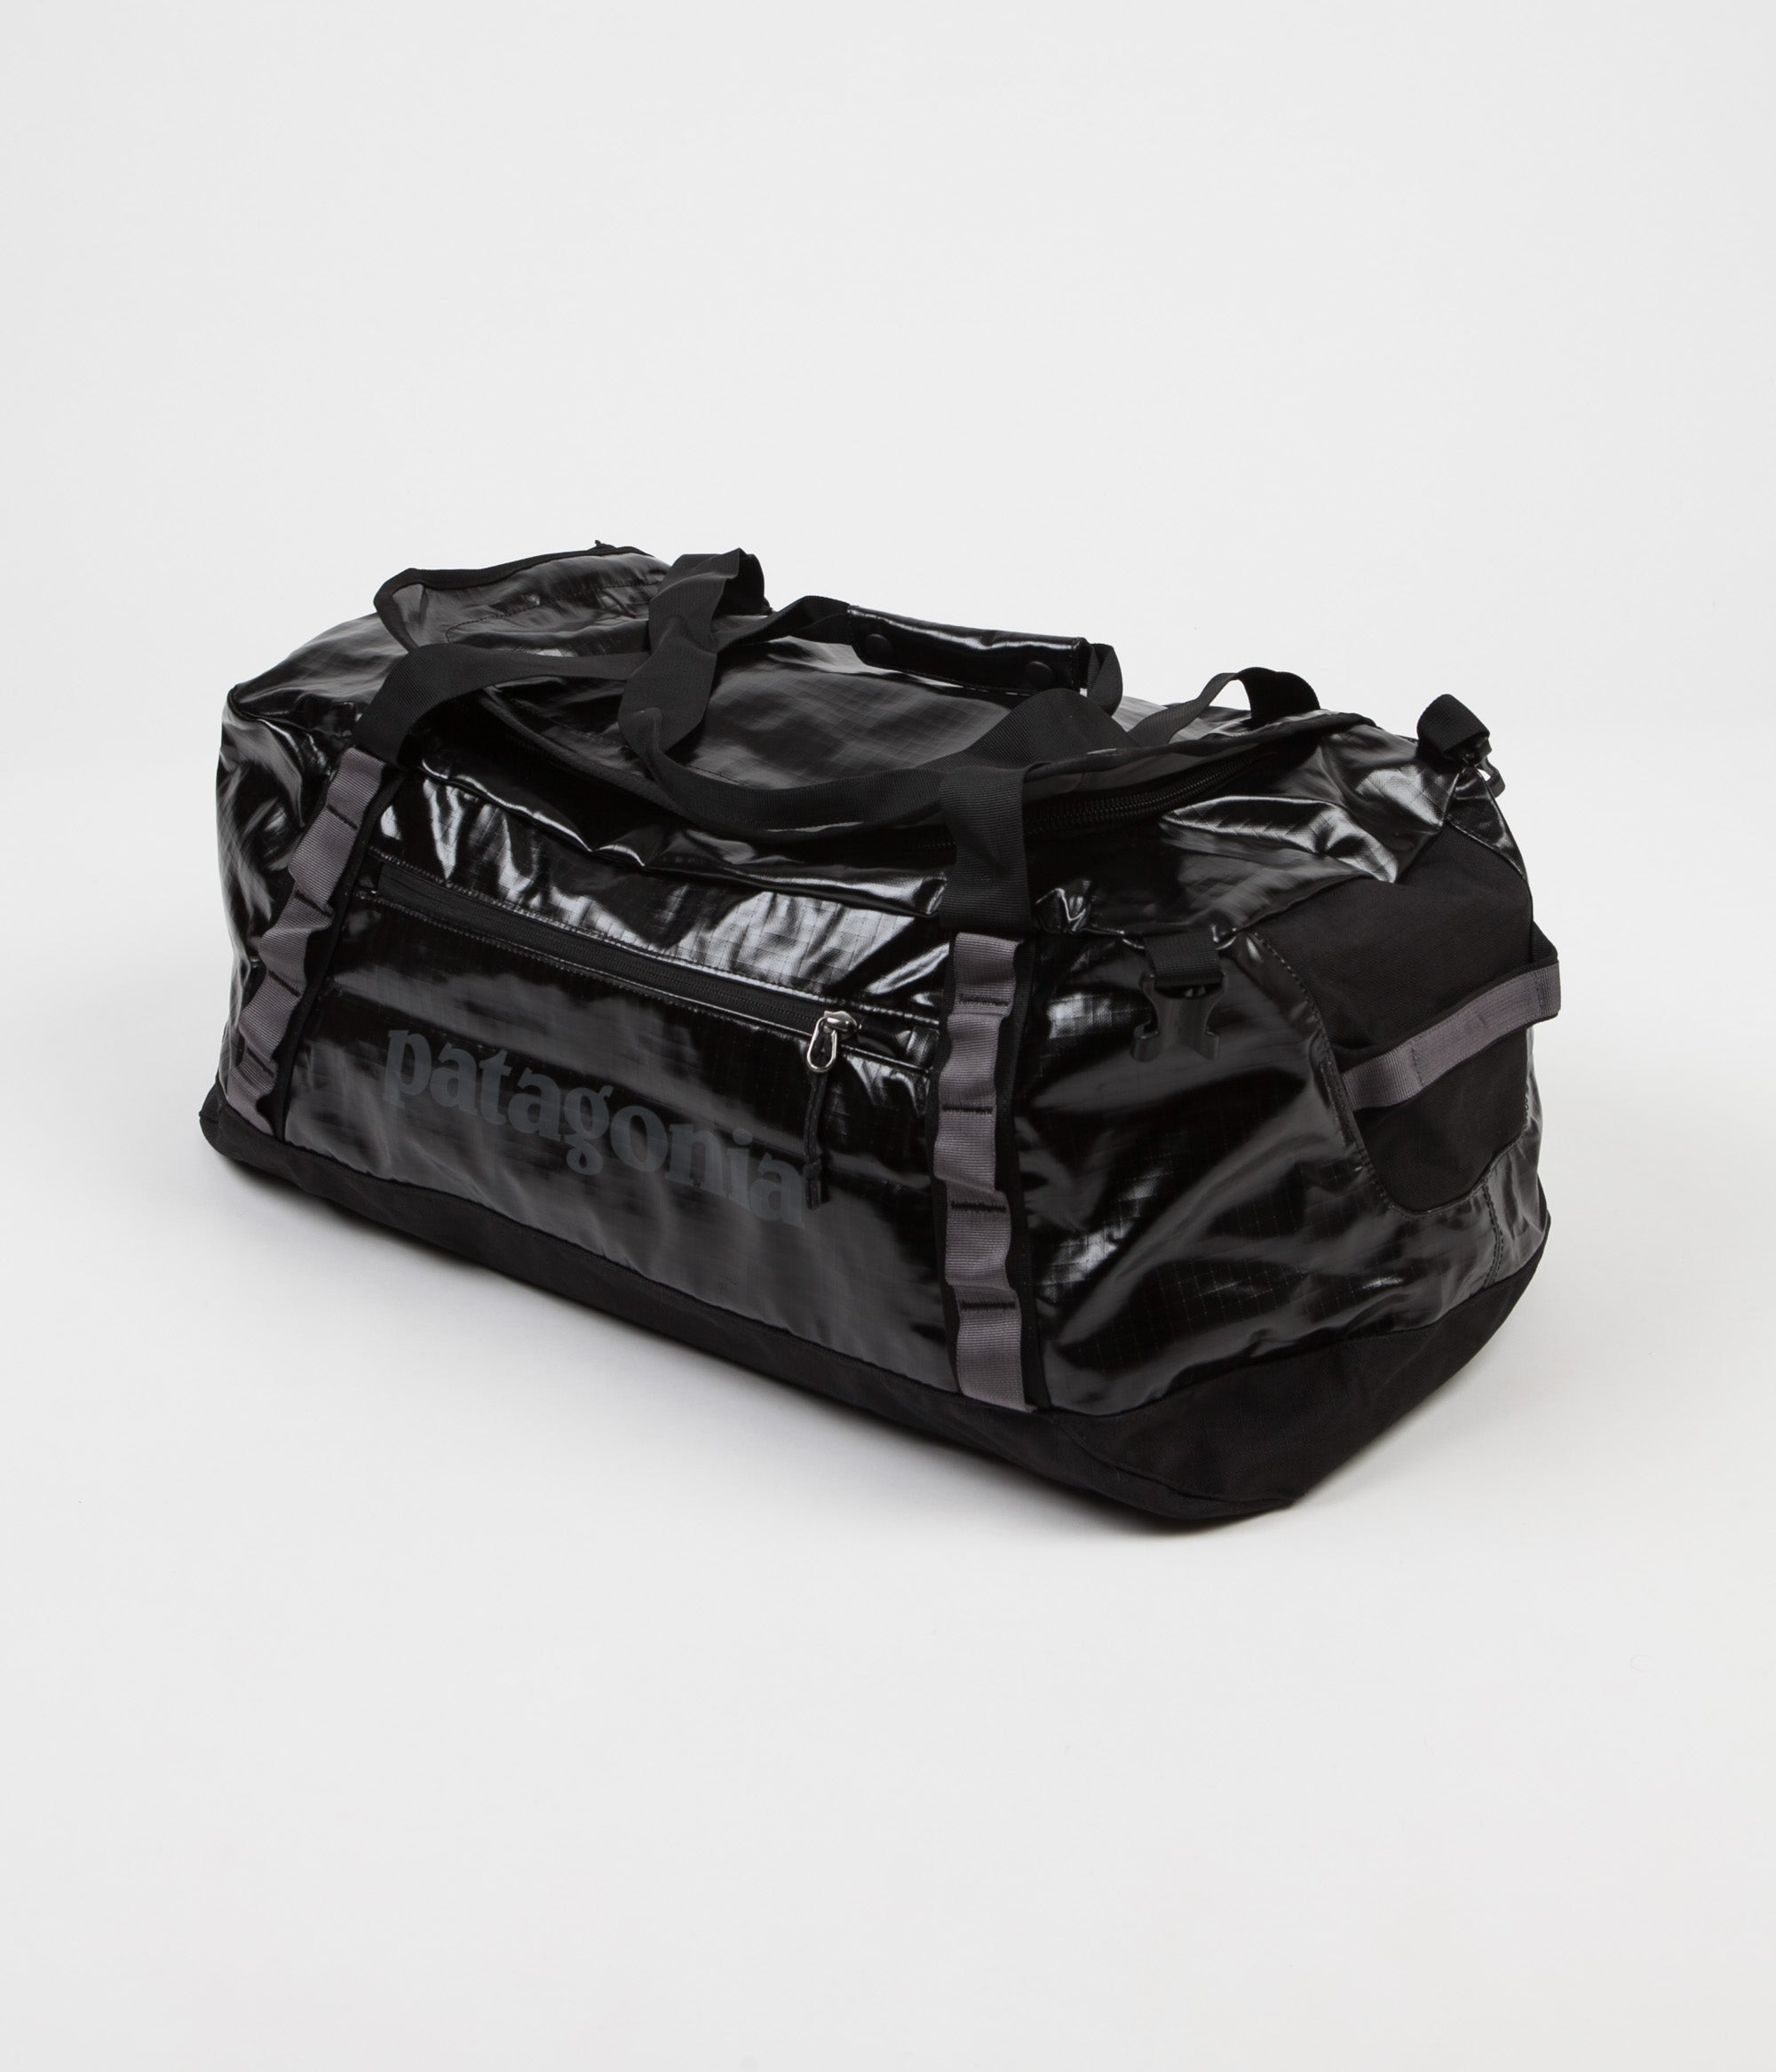 Patagonia Black Hole Duffel Bag 60L - Black